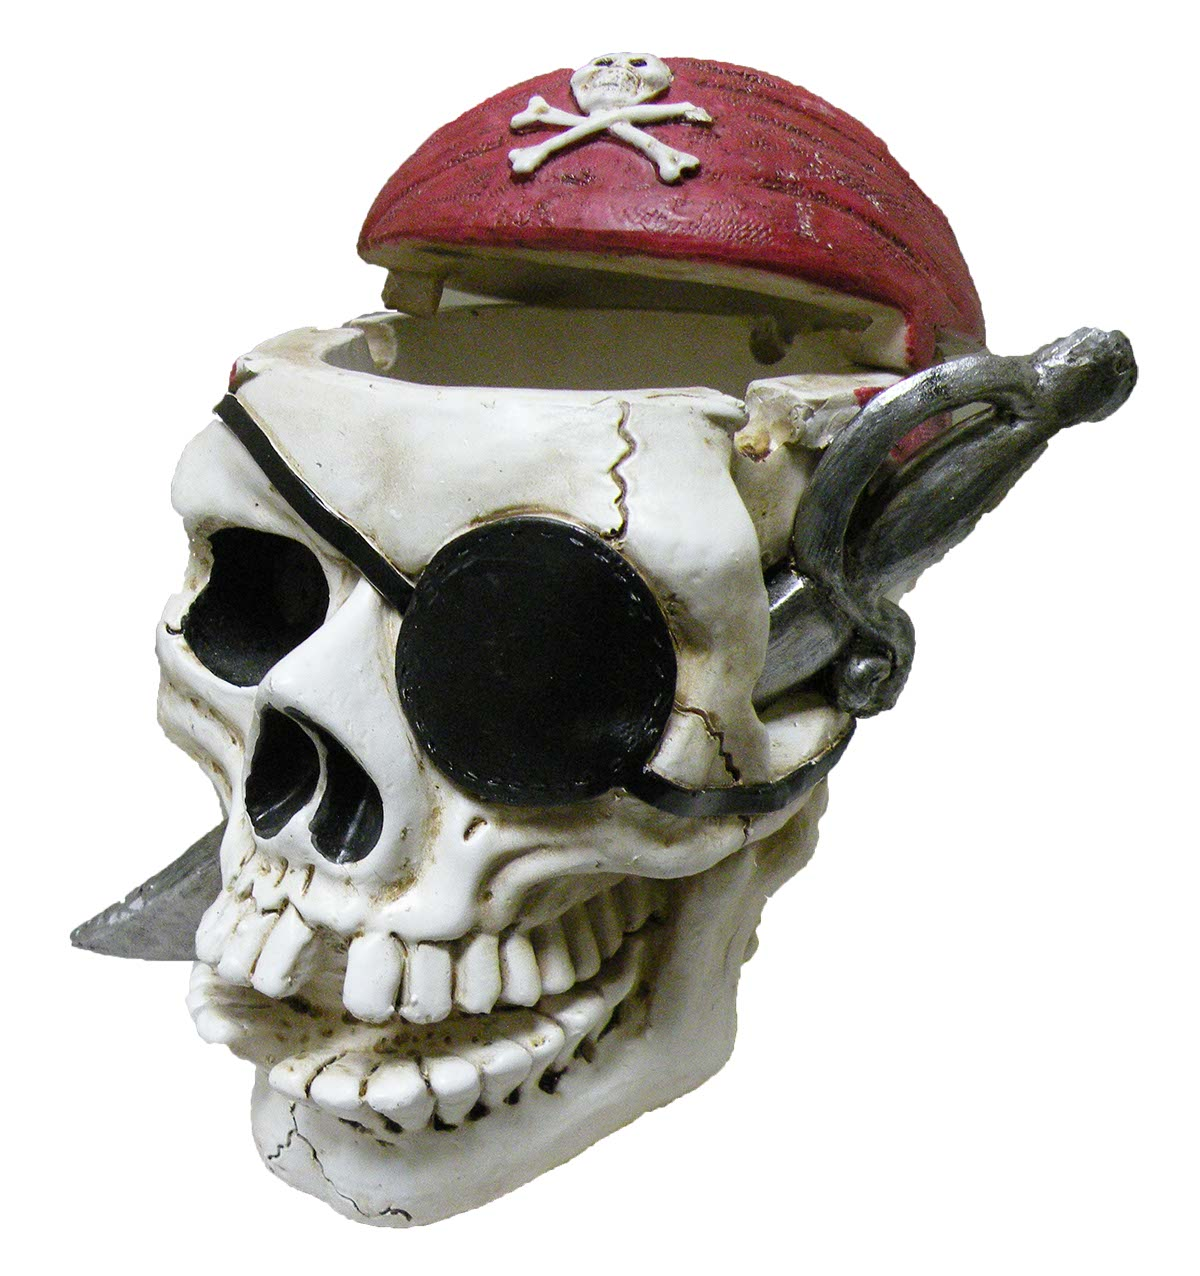 ASH TRAY POLY PIRATE SKULL  * UOM: PC * Minimum Order: 4